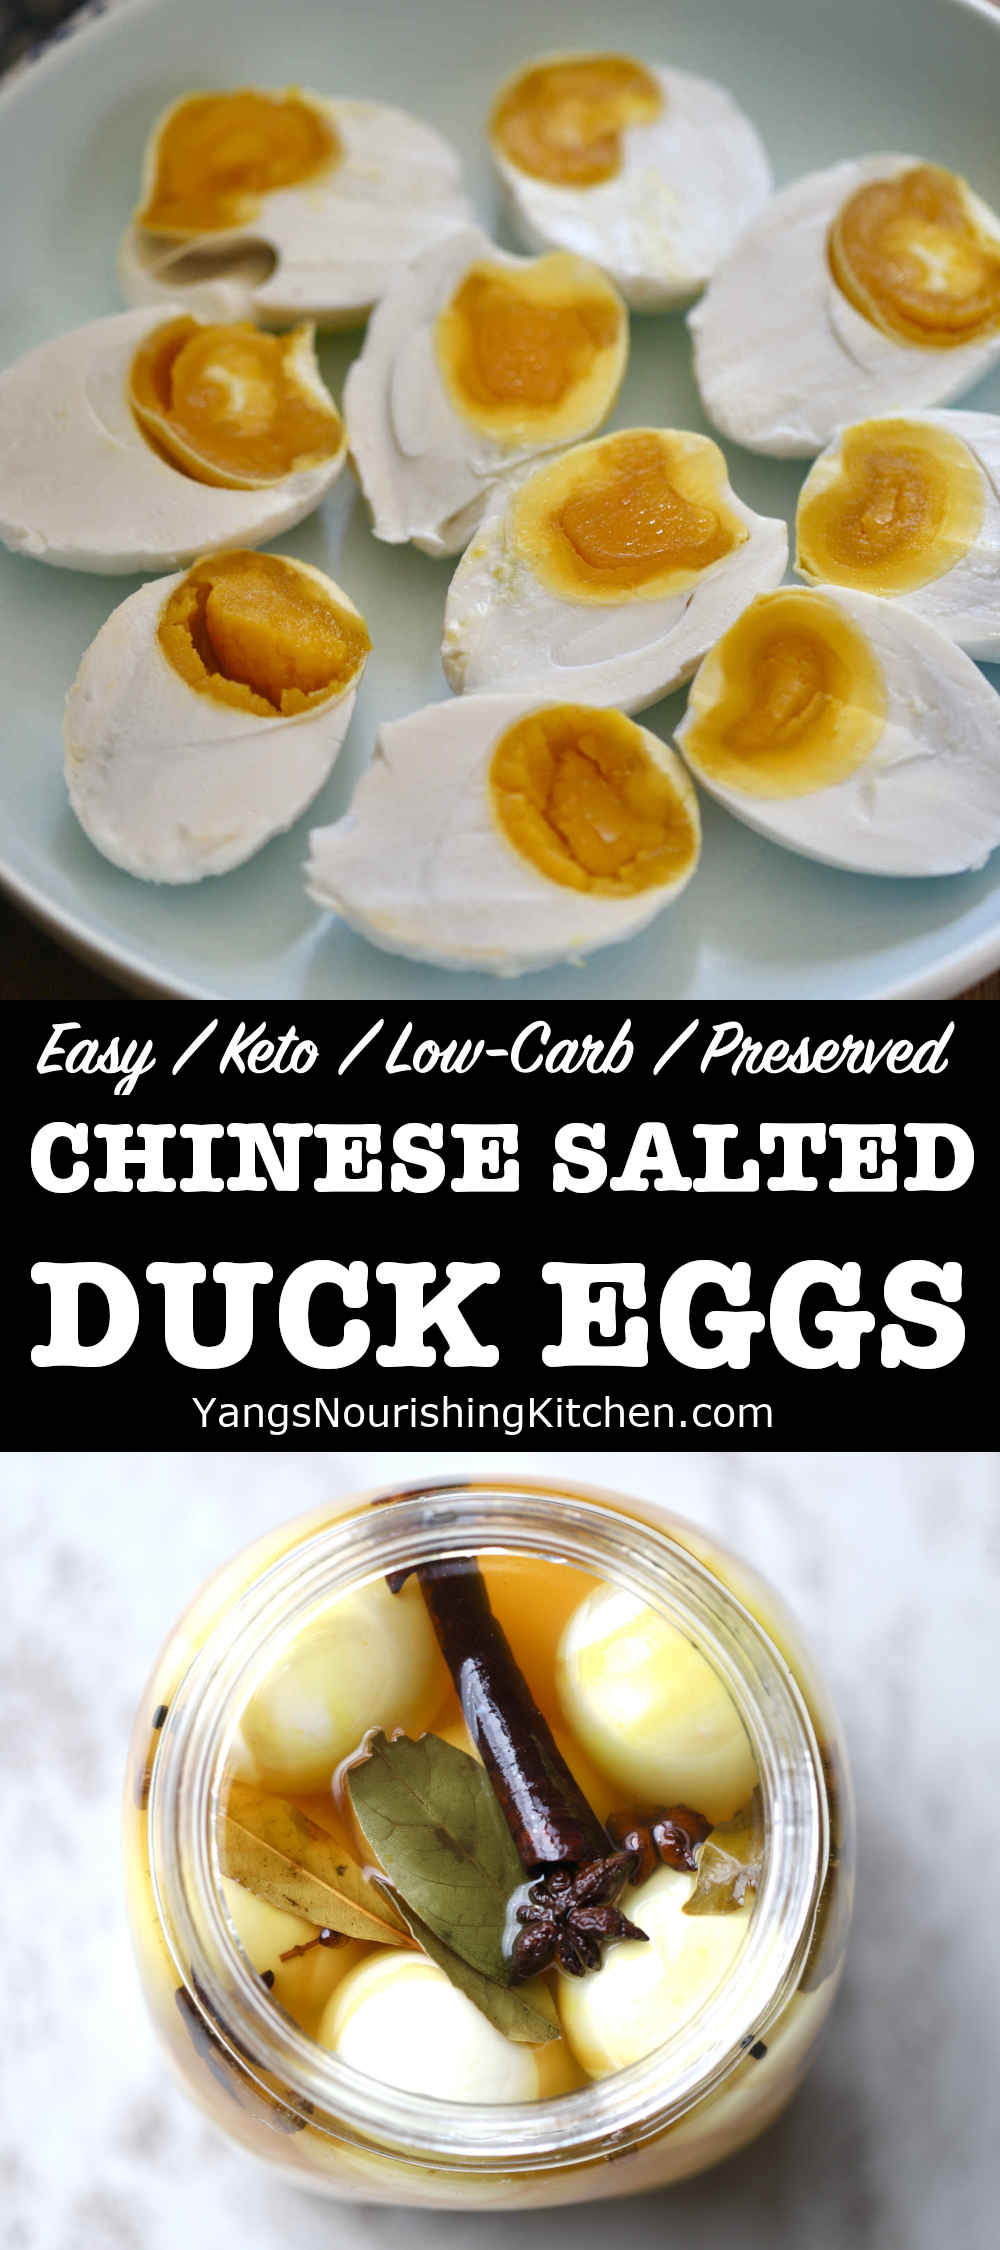 Chinese Salted Duck Eggs (Easy, Keto)